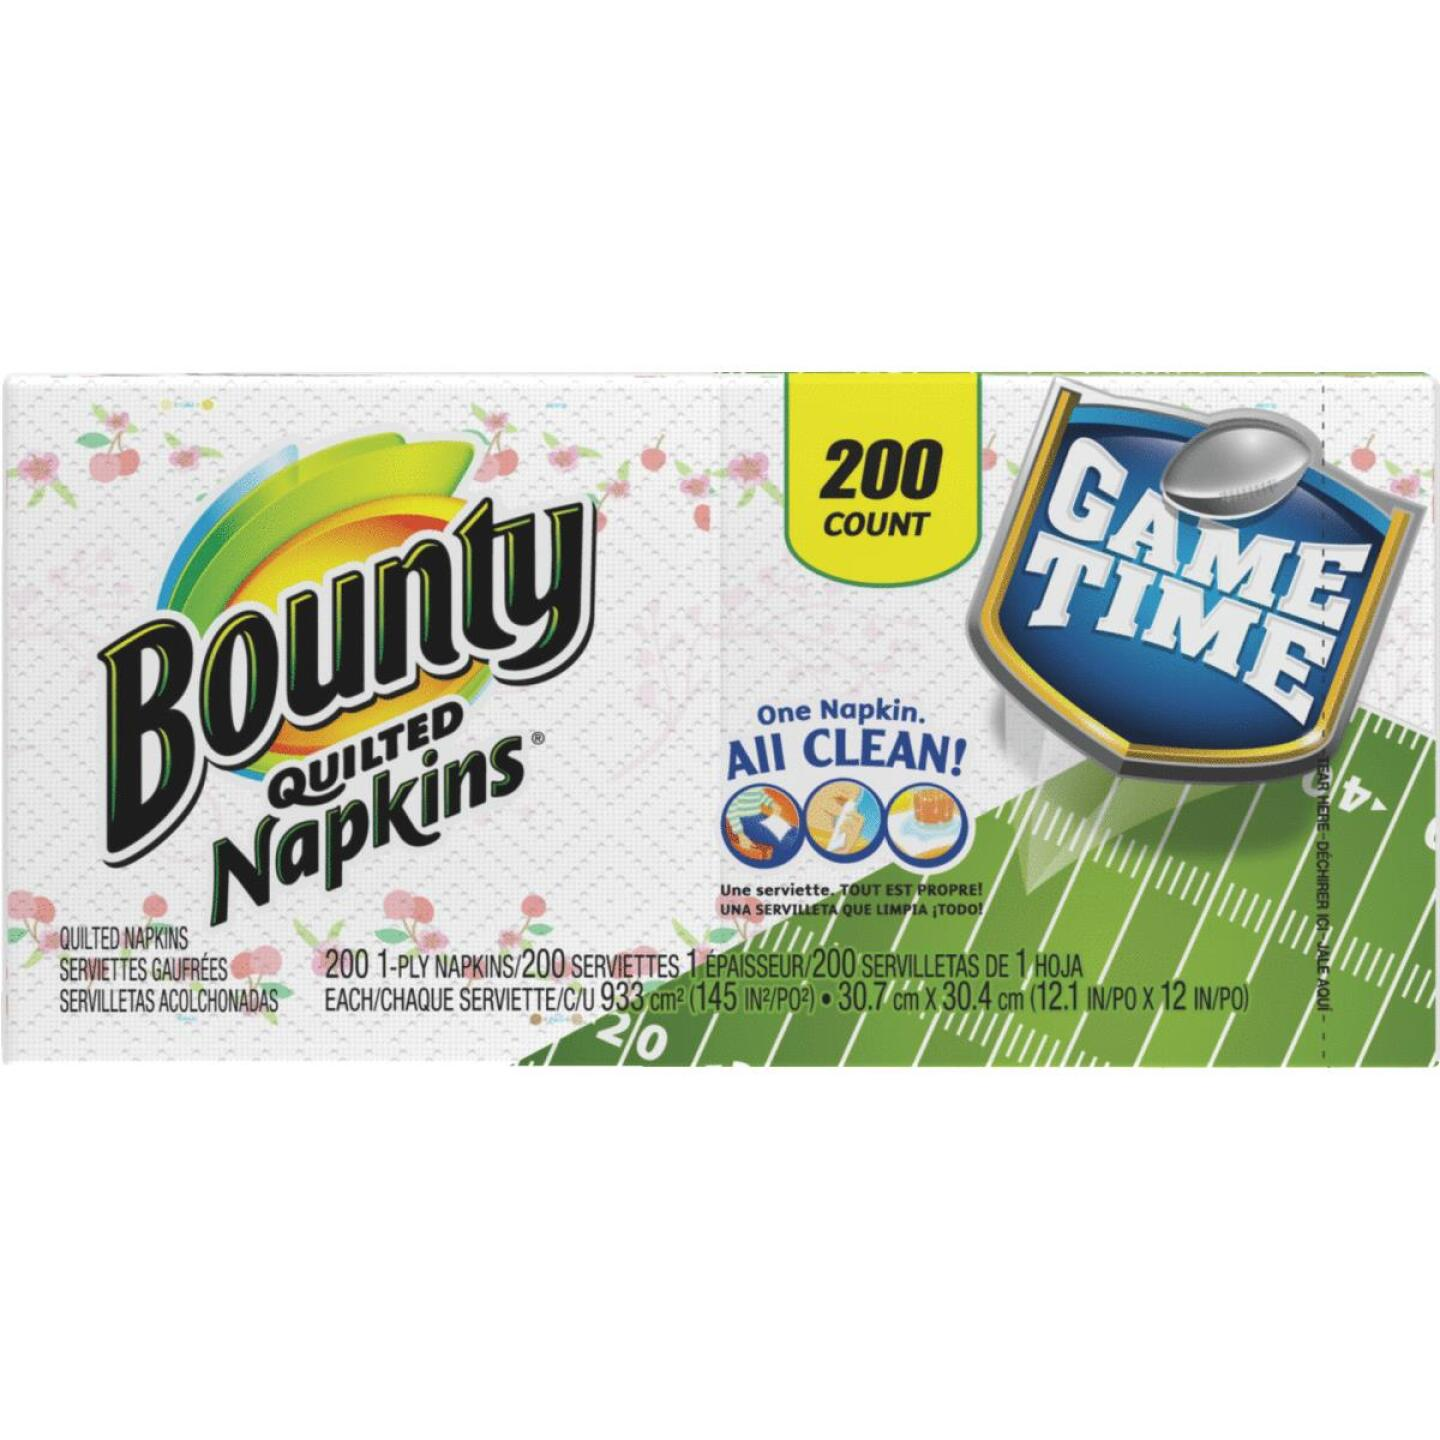 Bounty Quilted Paper Napkins (200 Count) Image 1